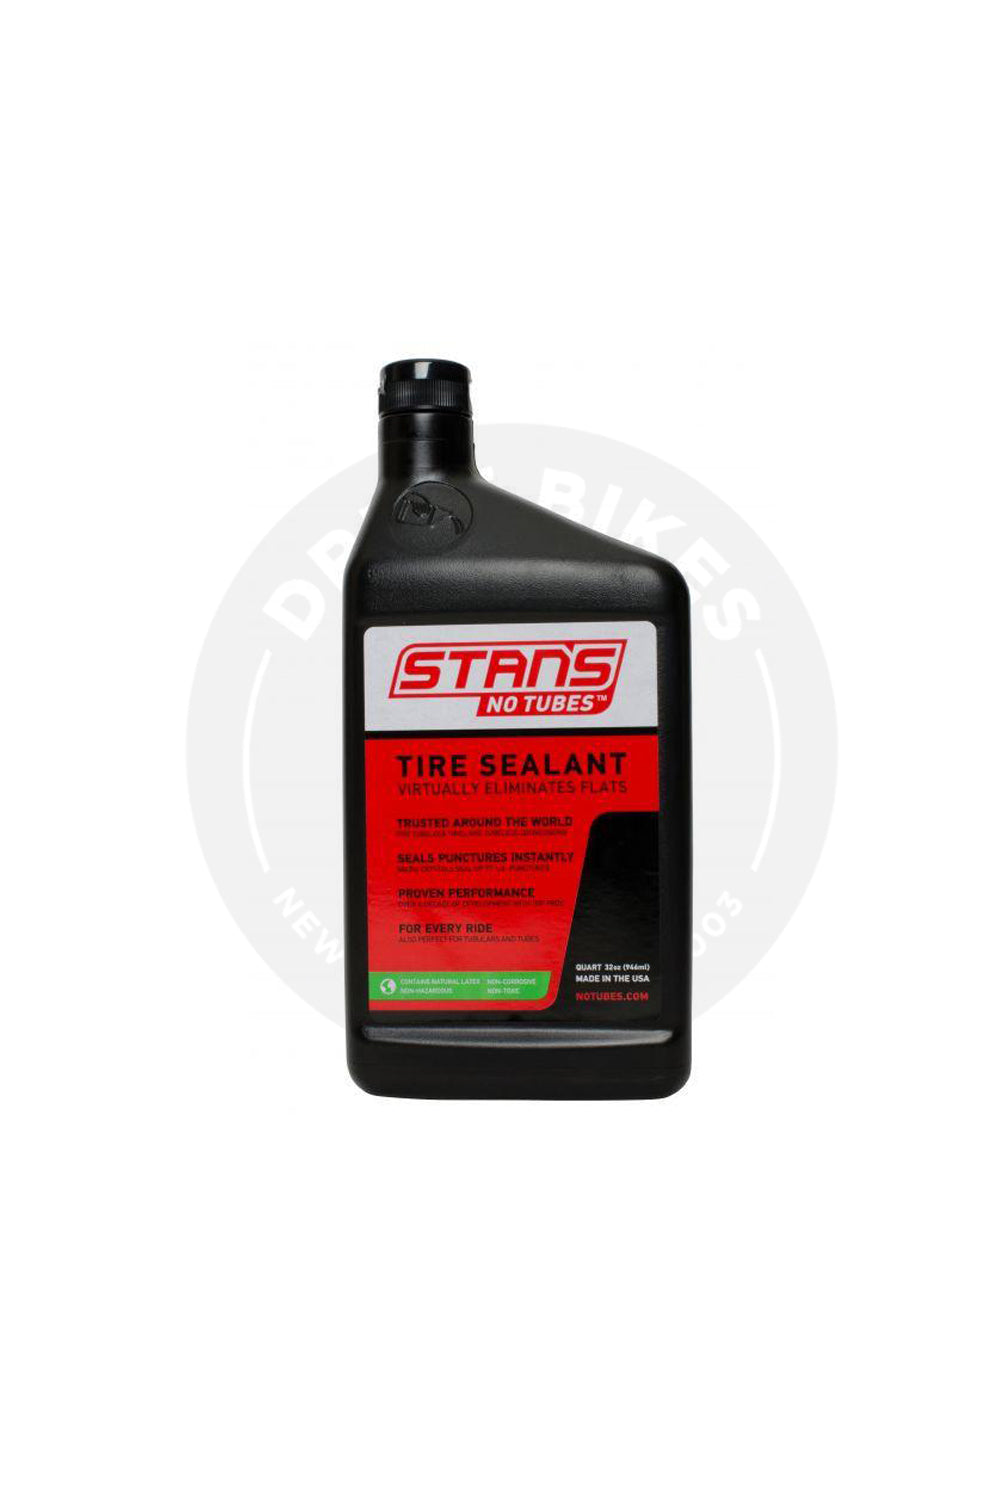 Stans No Tubes Bike Tire Sealant Quart 32OZ (946ml)